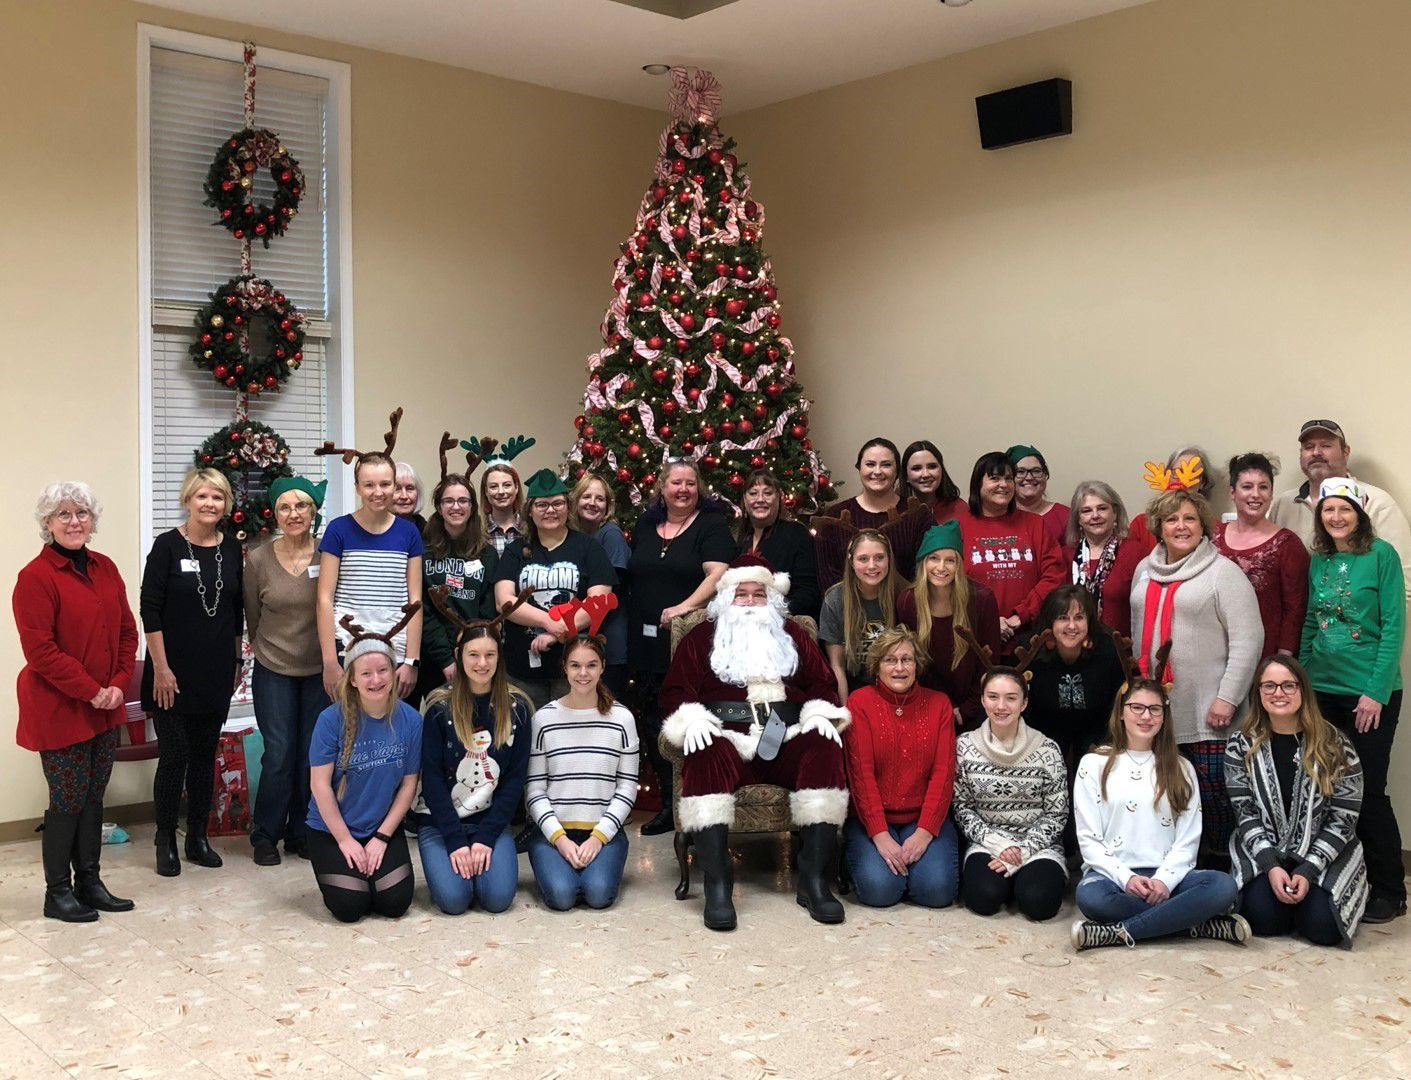 Providing Christmas cheer to foster children | My Courier Tribune